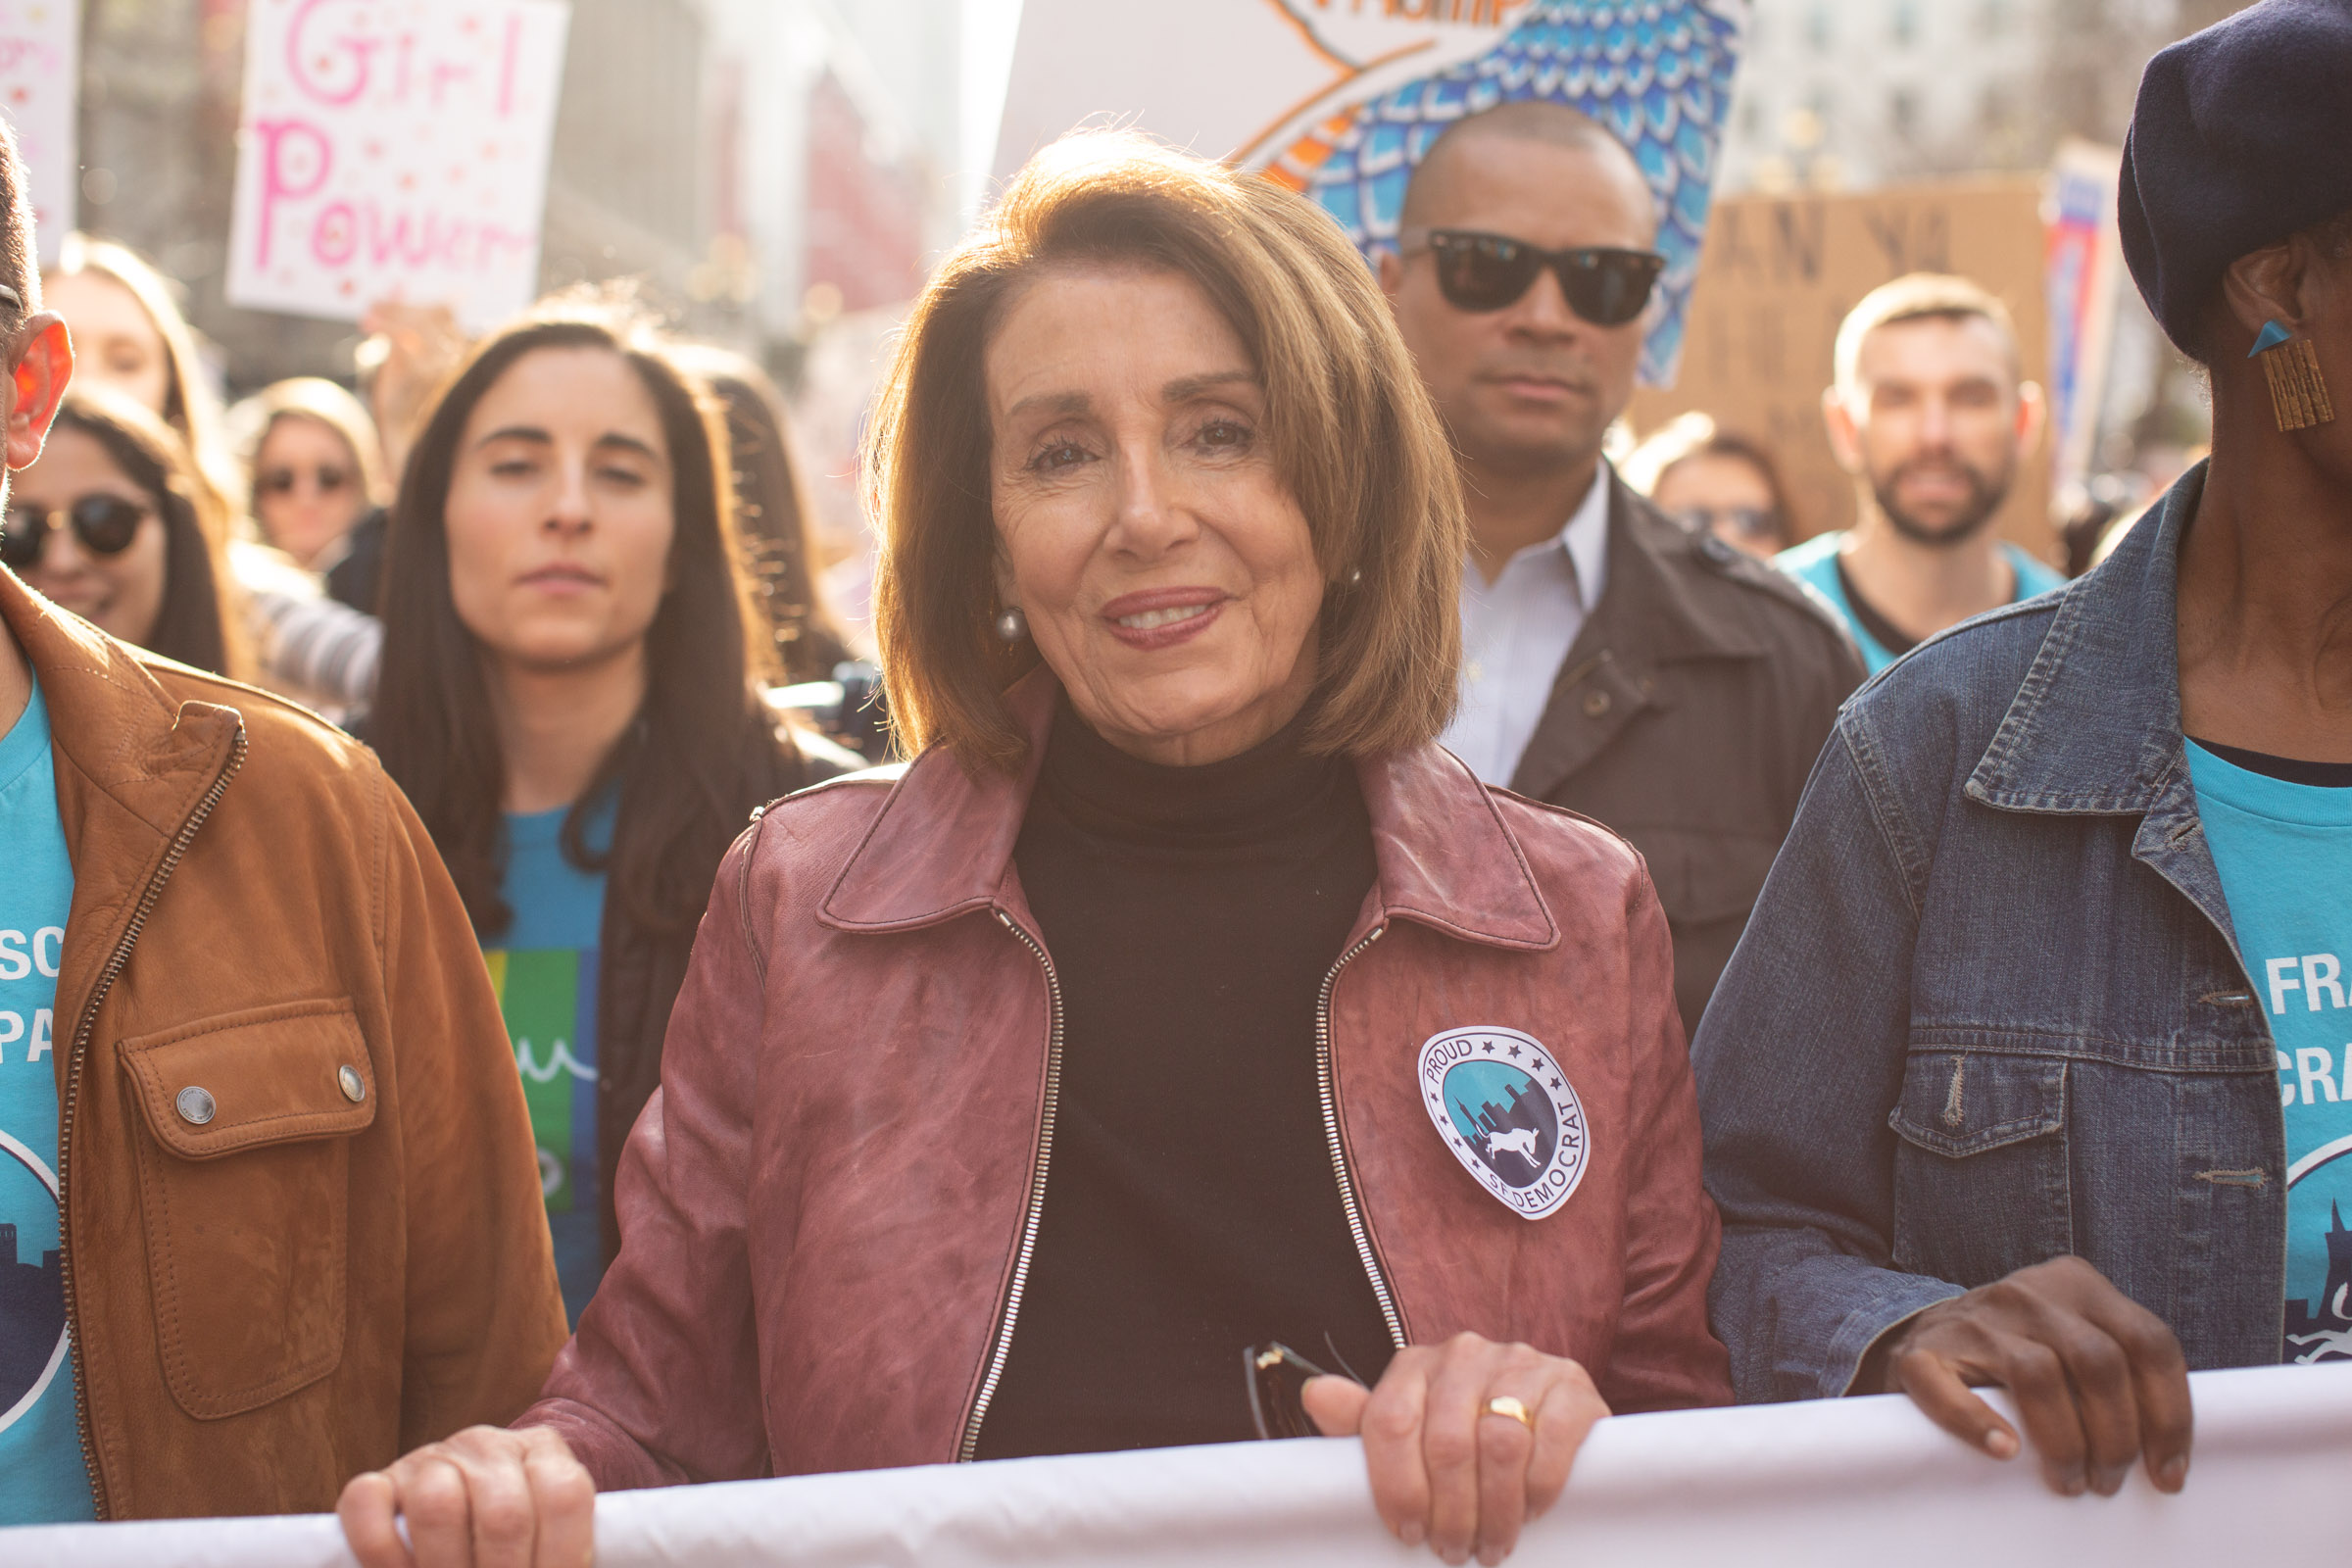 """Speaker Nancy Pelosi at San Francisco Women's March"" photo by Tumay Aslay"